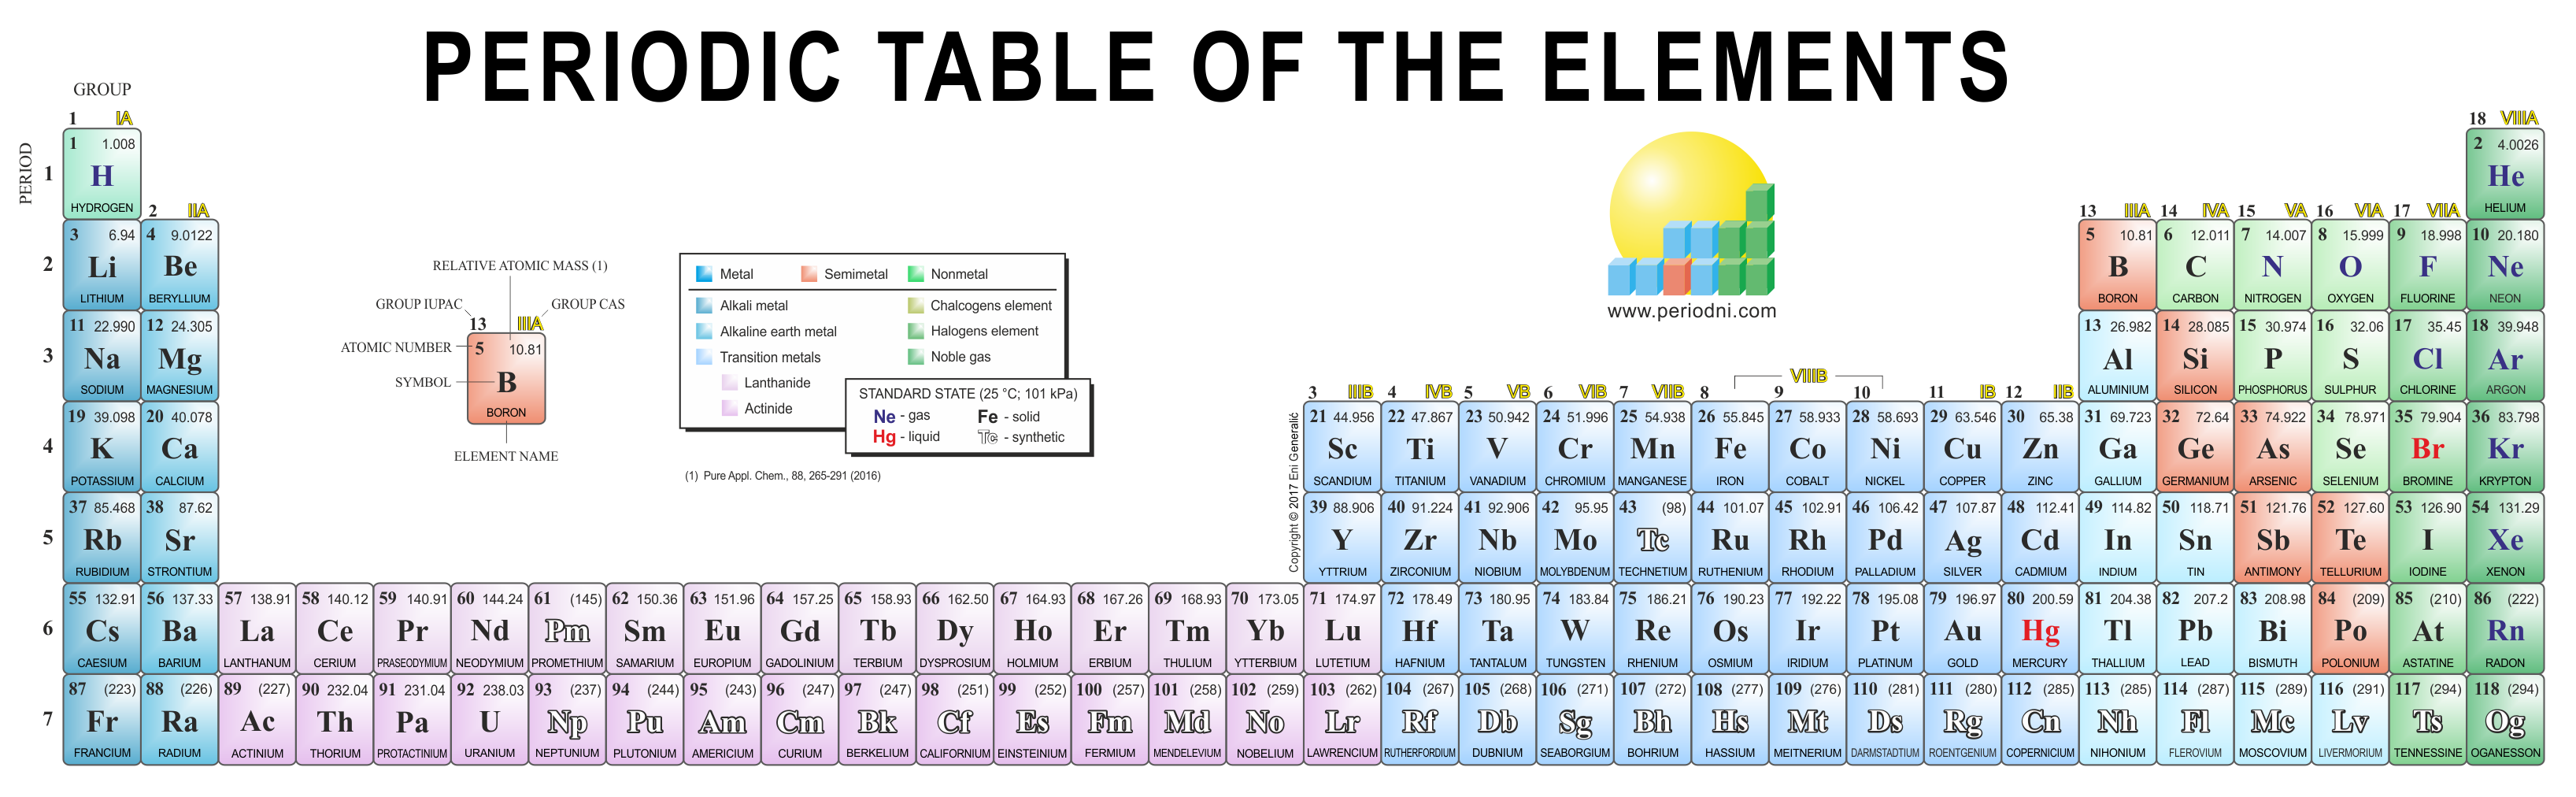 Chemistry images gallery 32 column periodic table urtaz Image collections